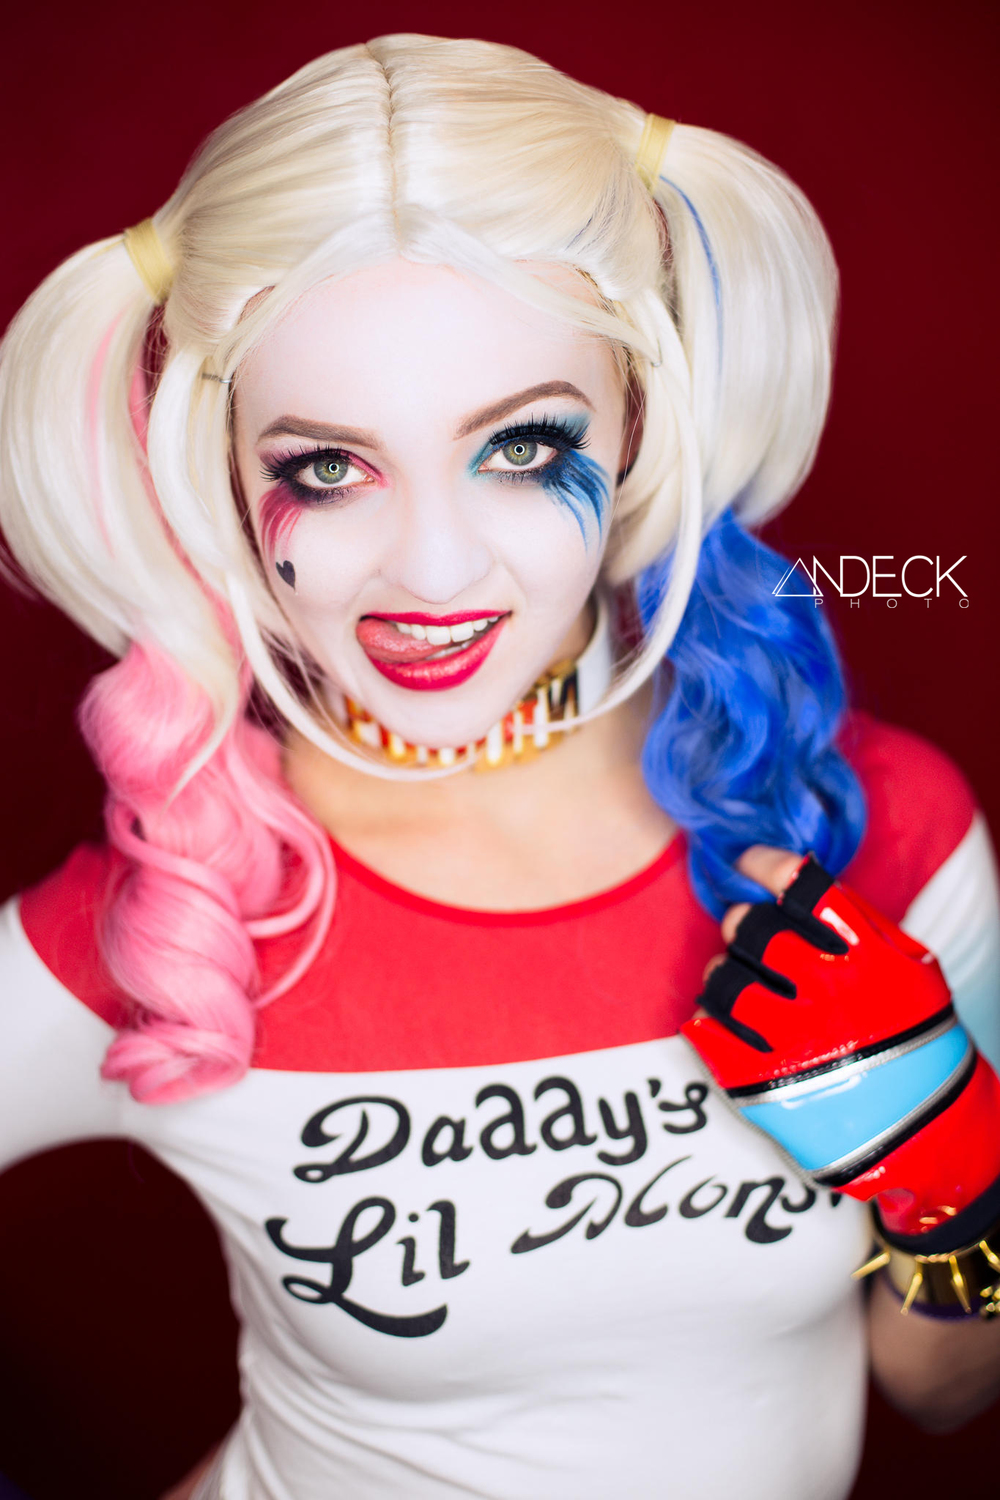 Denver Fashion Photographer, Brent Andeck_Harley Quinn-5152-2.jpg